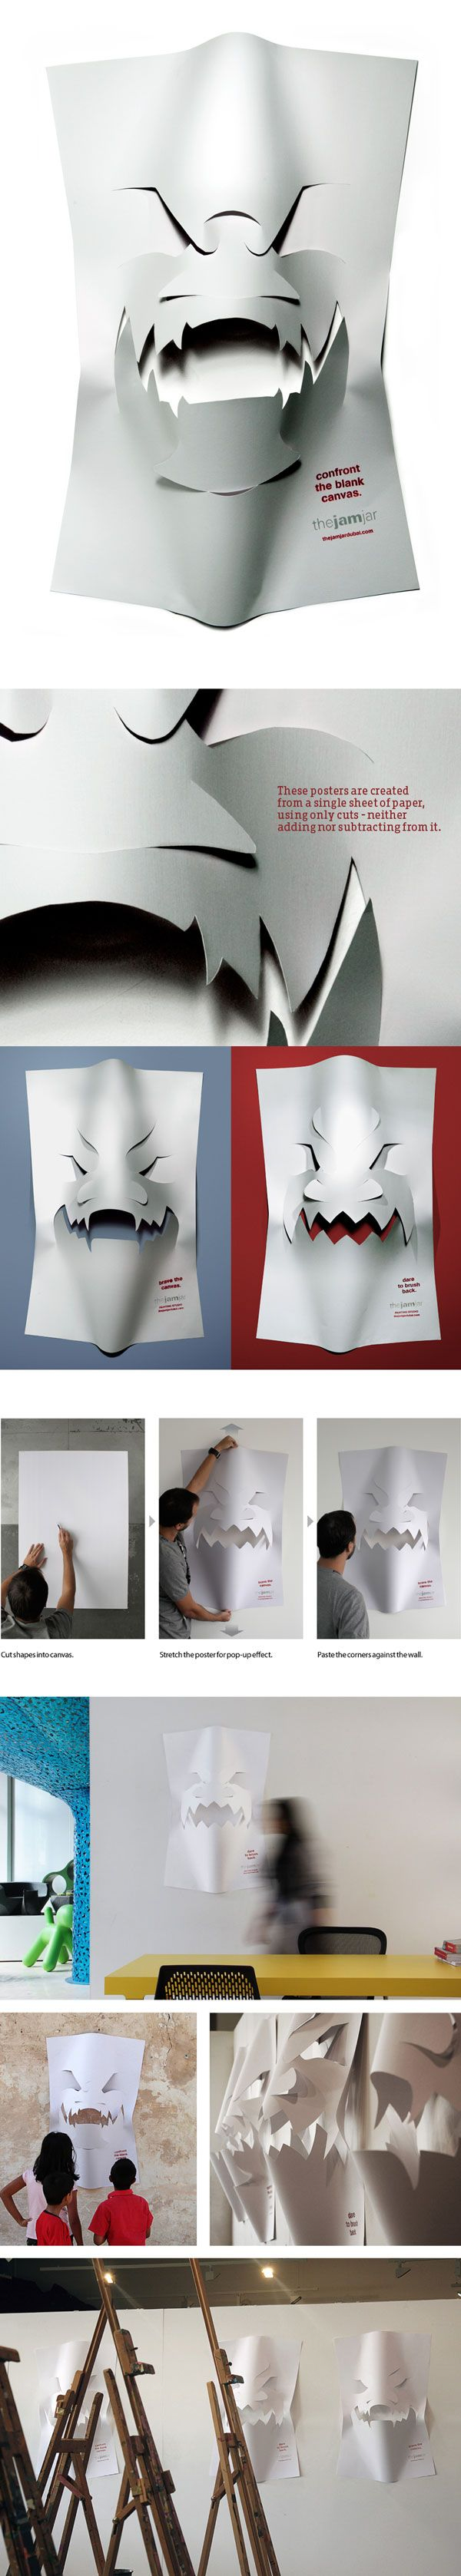 Blank Canvas posters by Leo Rosa Borges